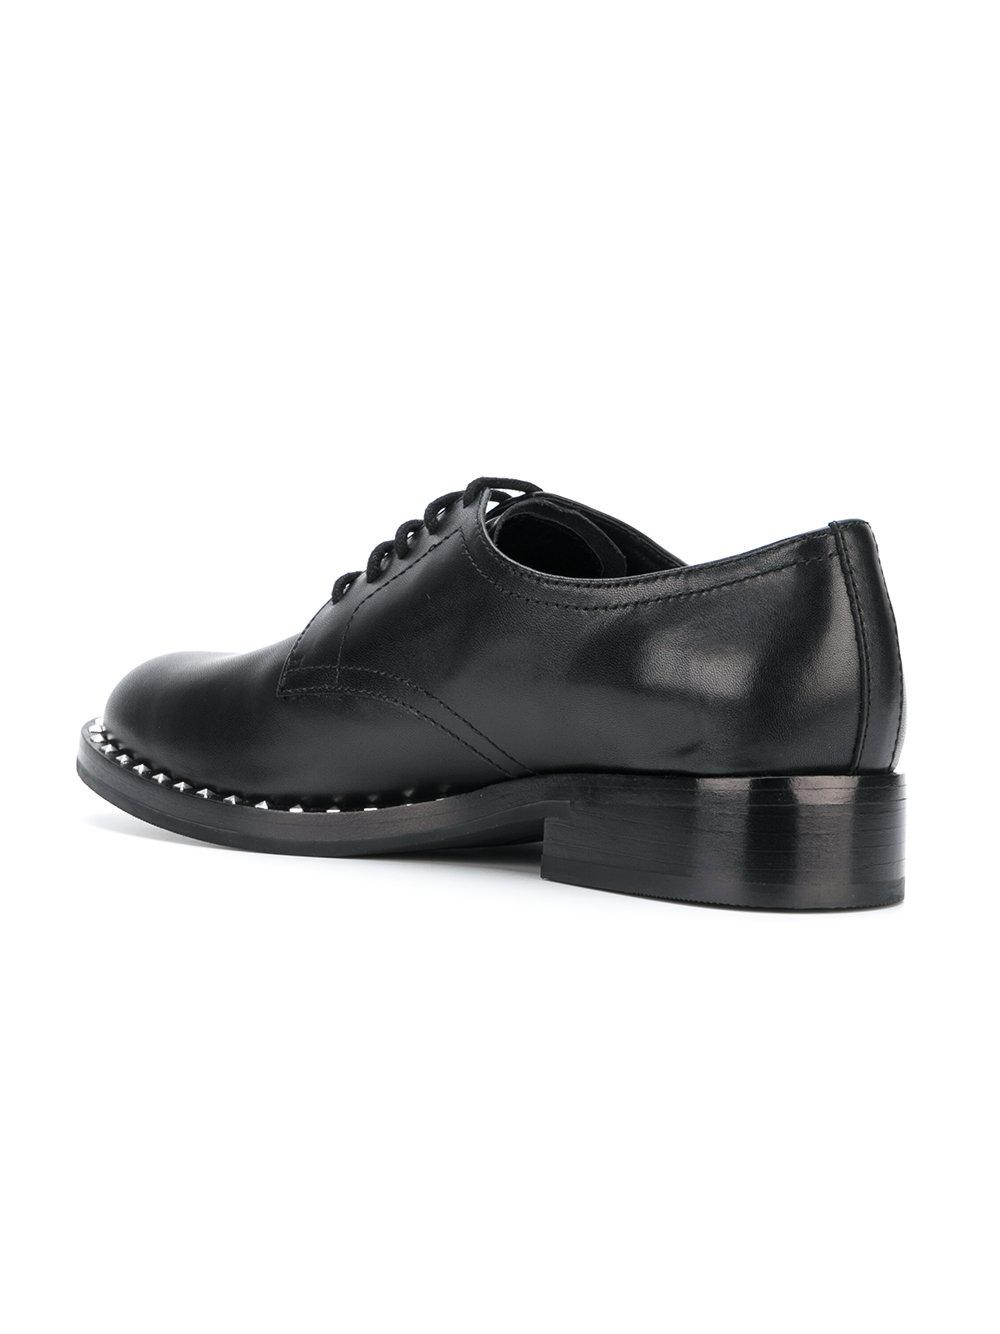 Ash Leather Wilco Shoes in Black for Men